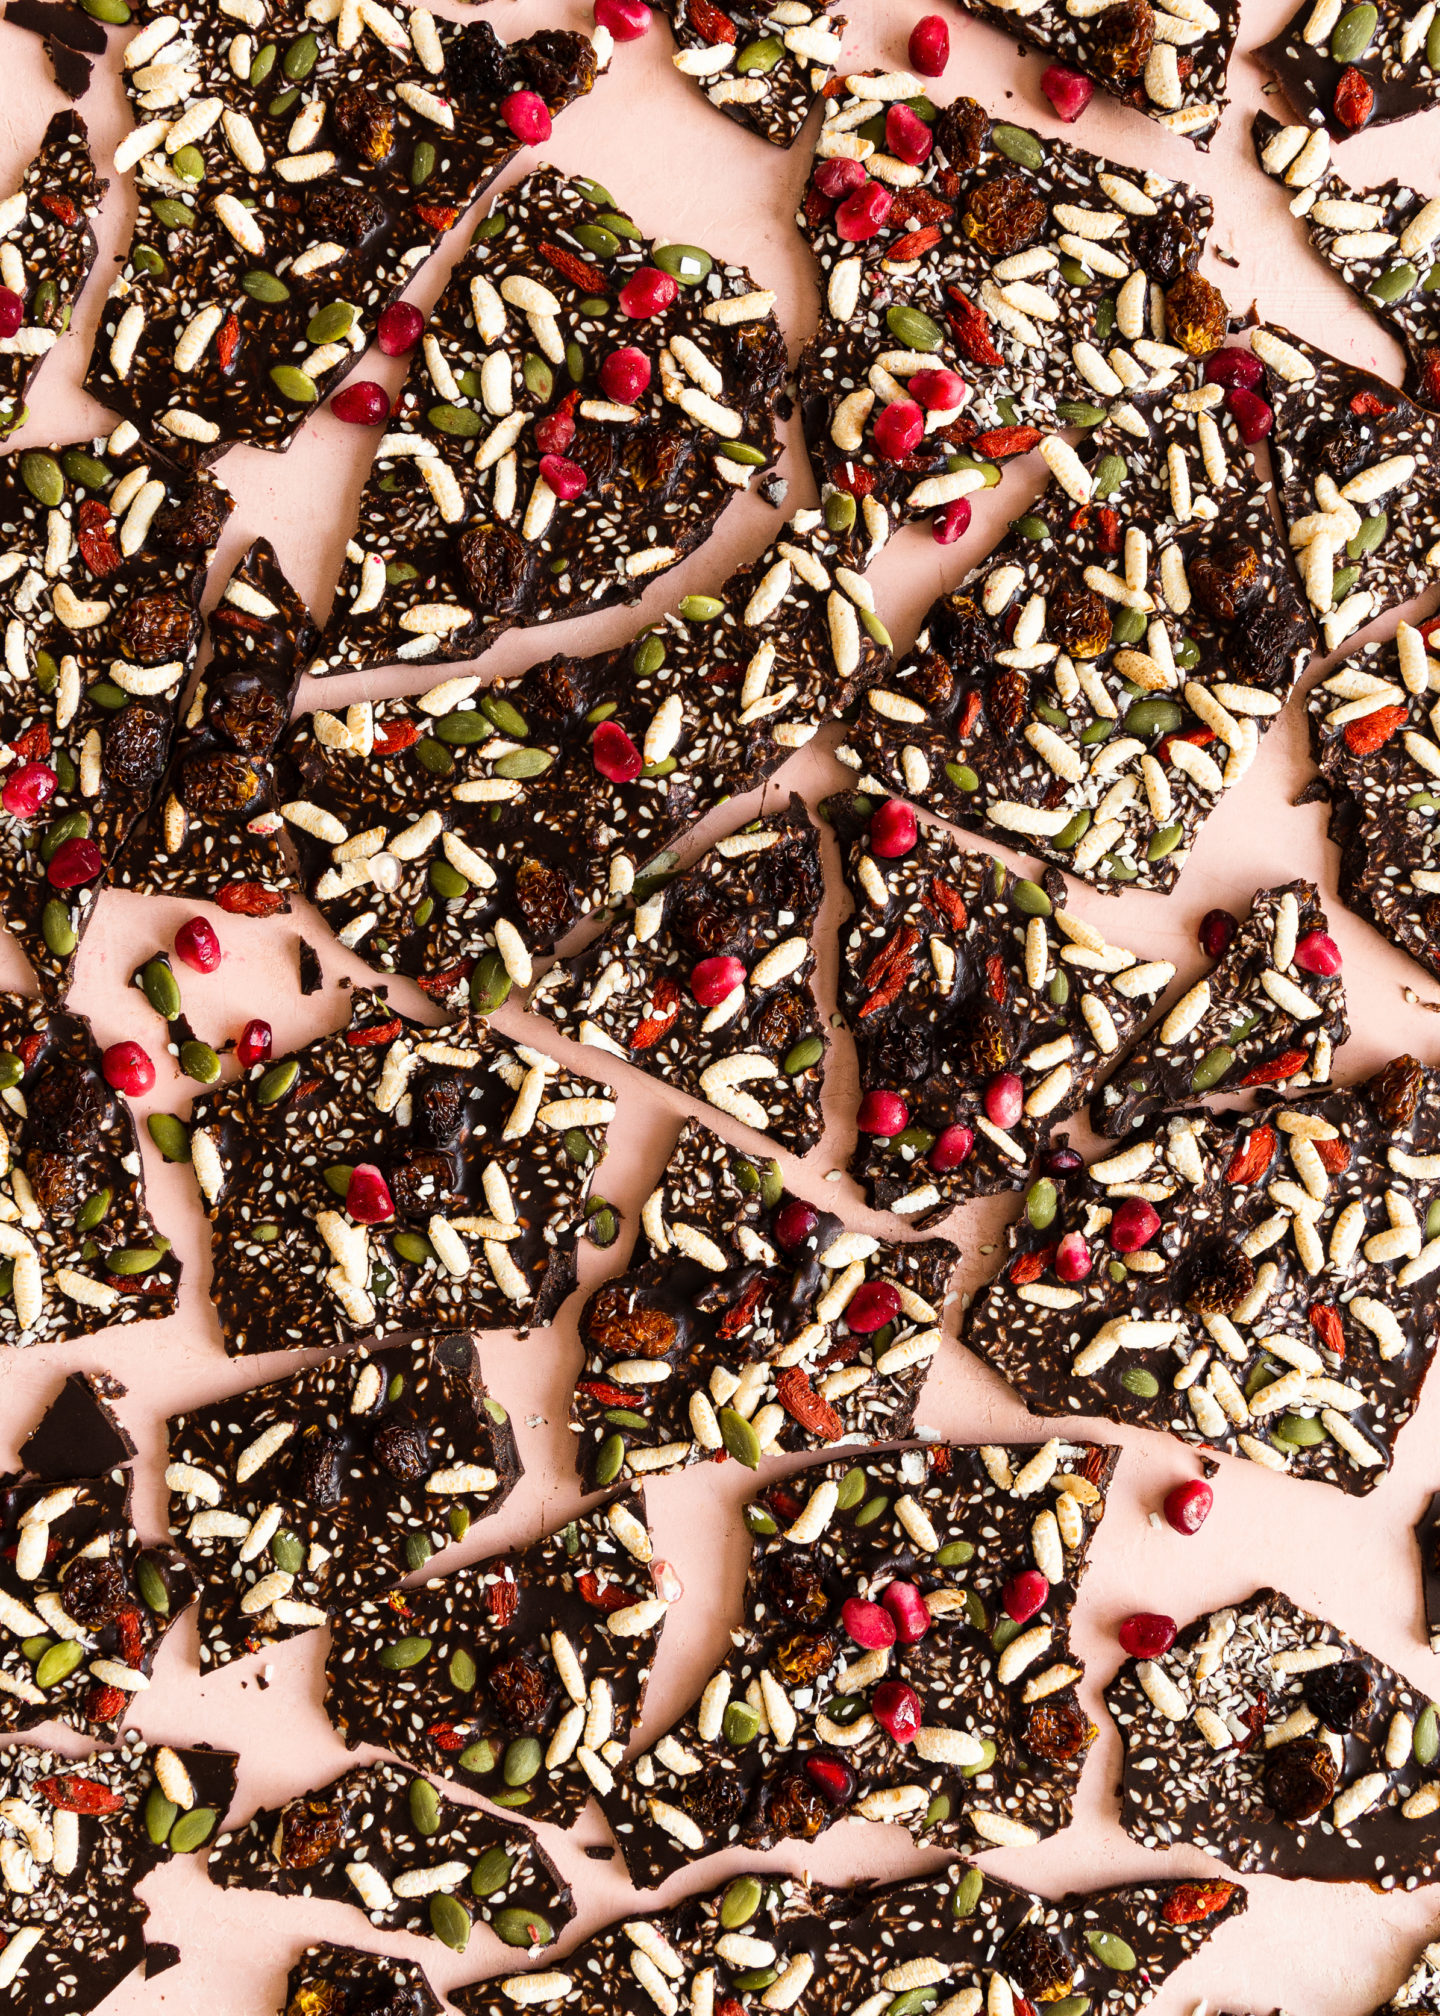 Chocolate Bark with Nuts and Seeds